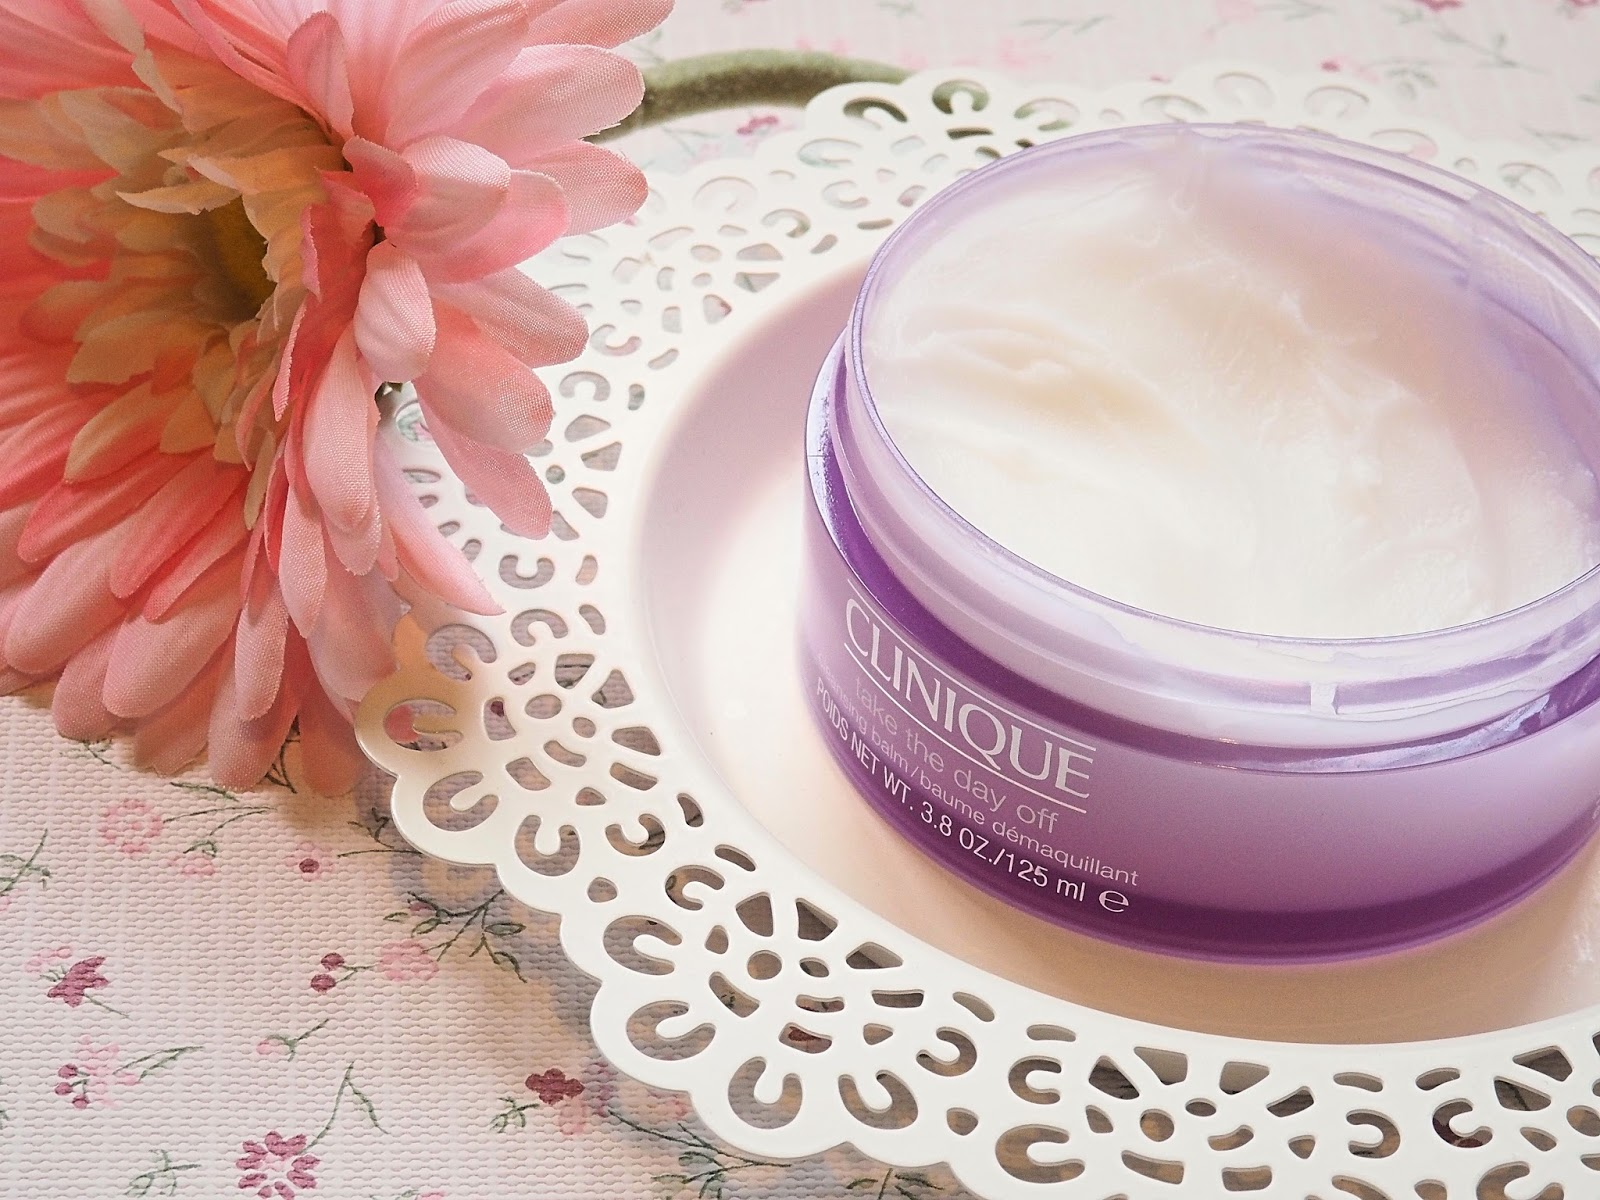 Take The Day Off Cleansing Balm by Clinique #5